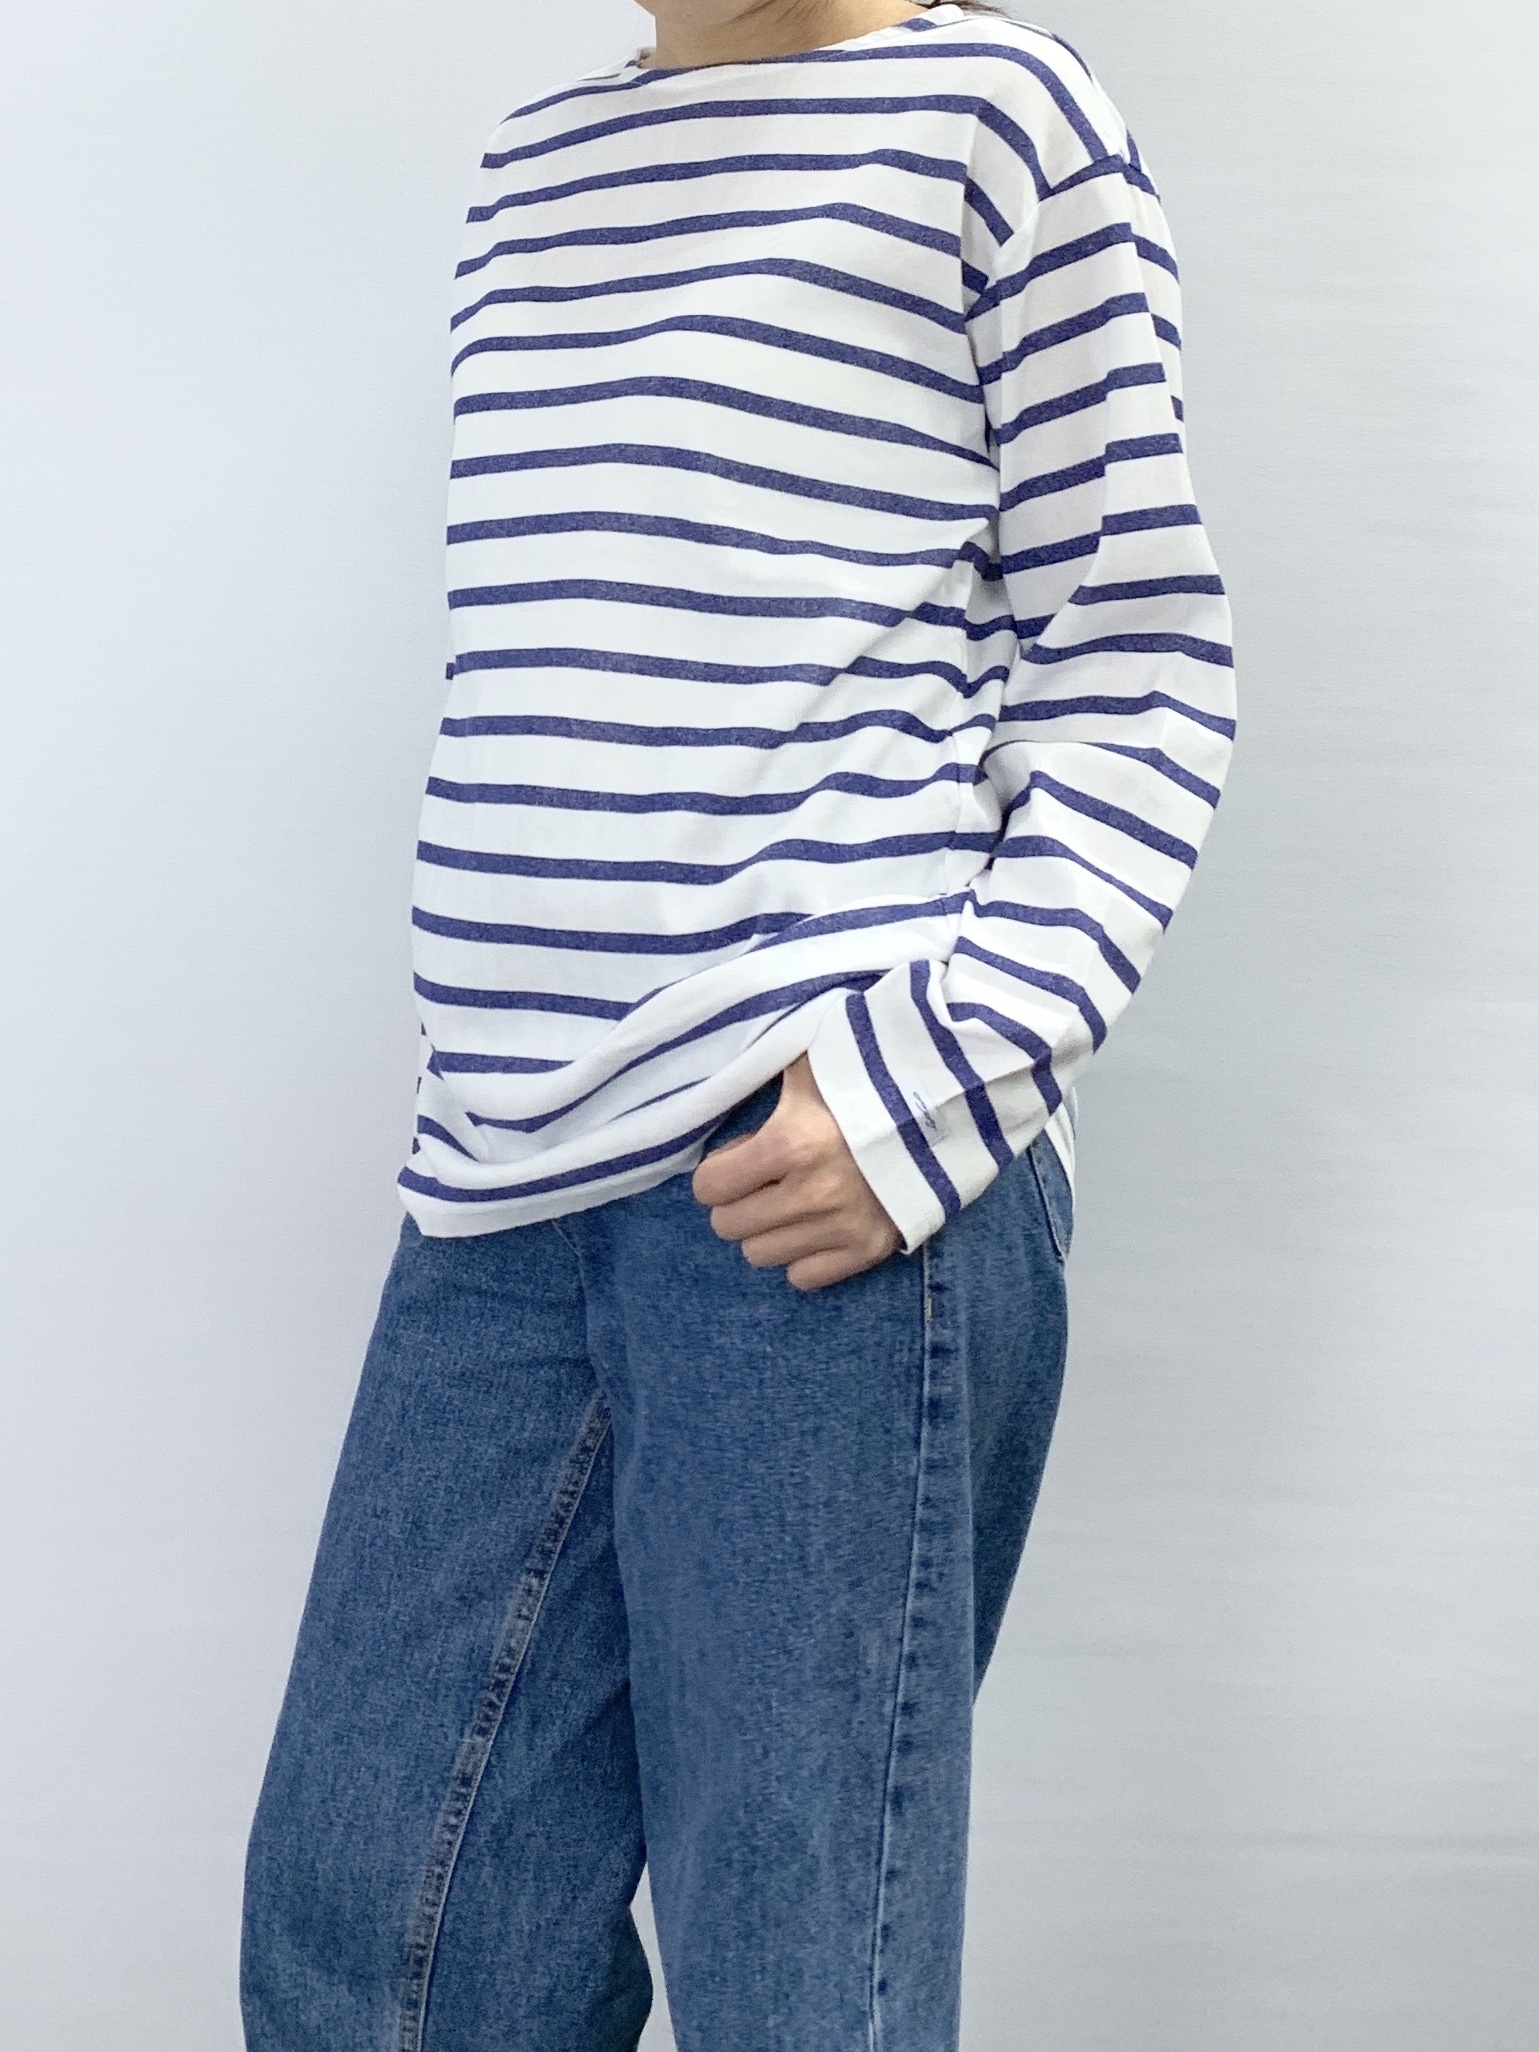 BOAT NECK BORDER LONG SLEEVE T-SHIRT1